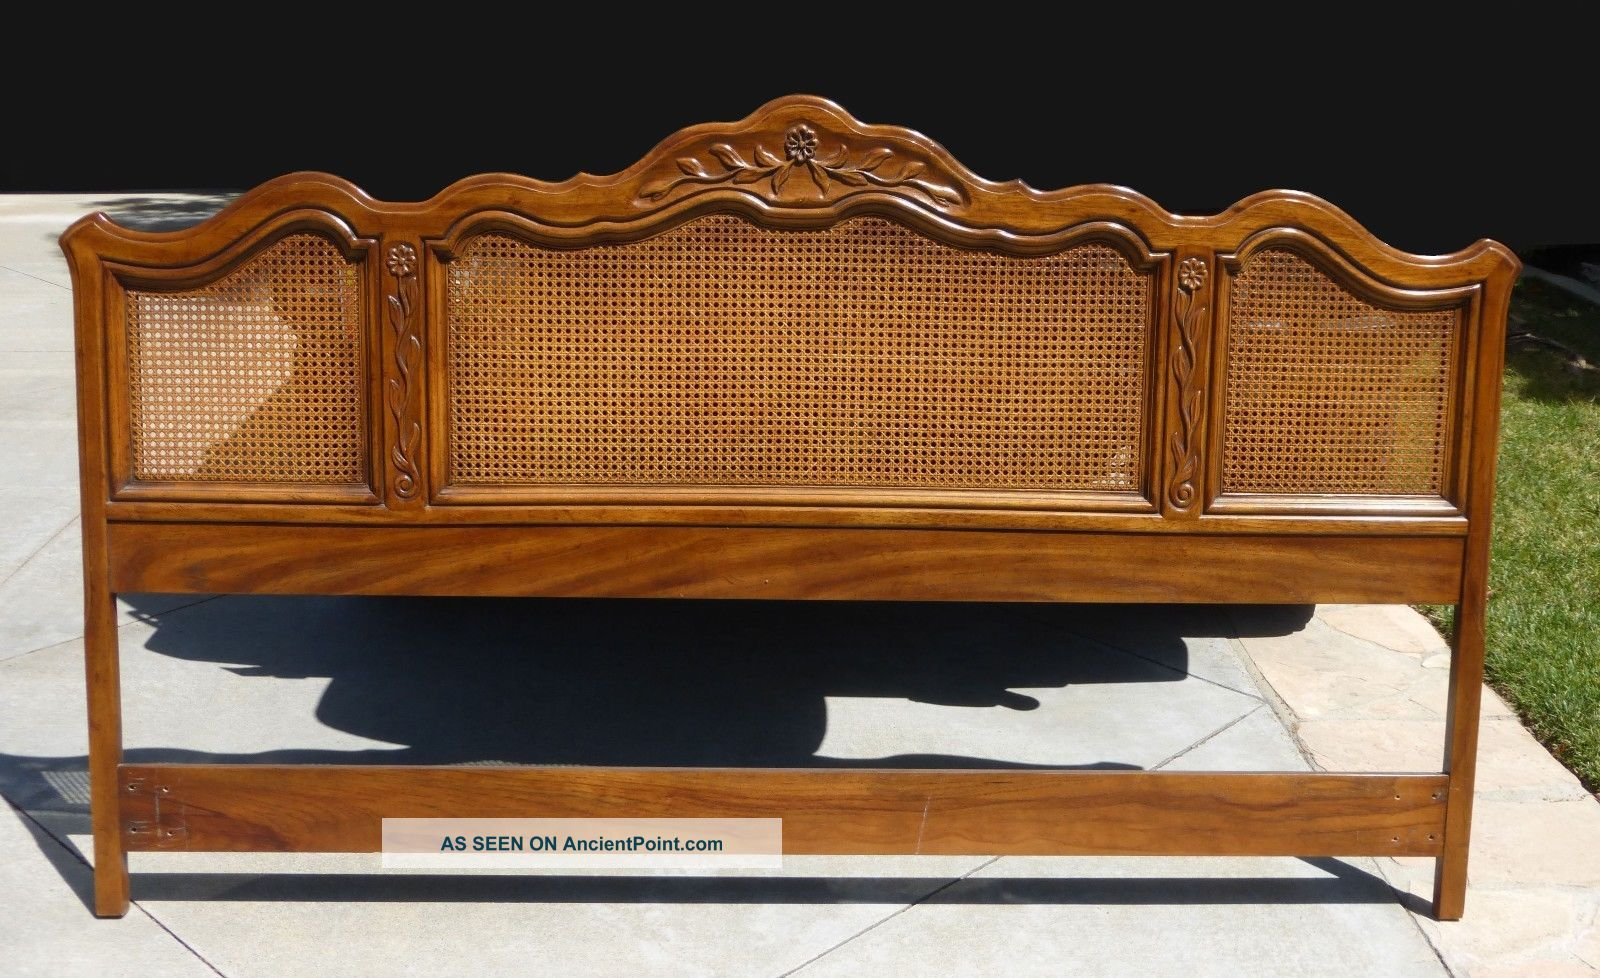 drexel bedroom set%0A French Provincial Headboard   King Cal by SHABBYEUROPEANFLAIR   French  Provincial Furniture   Pinterest   French provincial  French provincial  furniture and